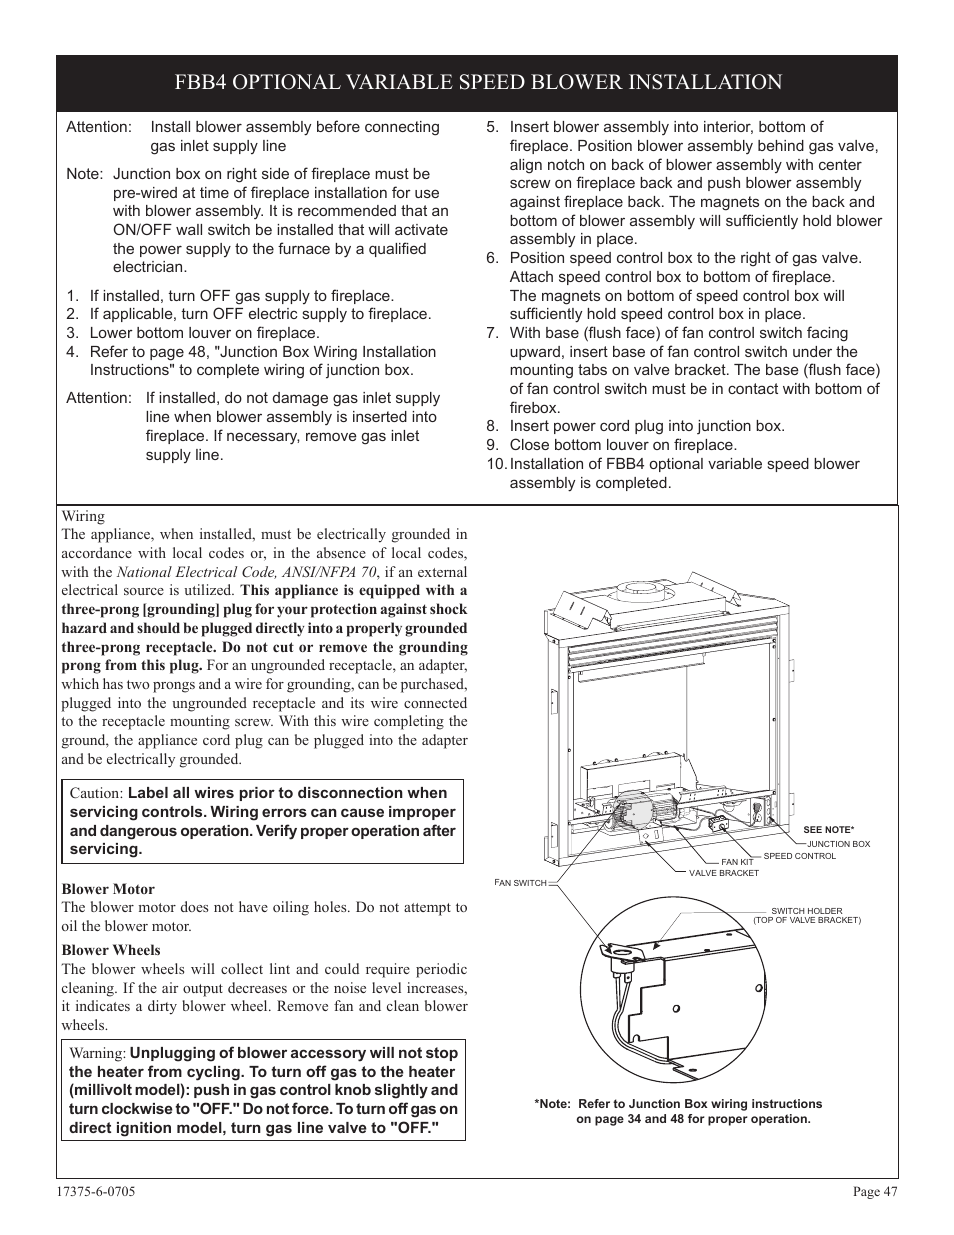 hight resolution of fbb4 optional variable speed blower installation empire comfort systems dvp42fp7 en user manual page 47 52